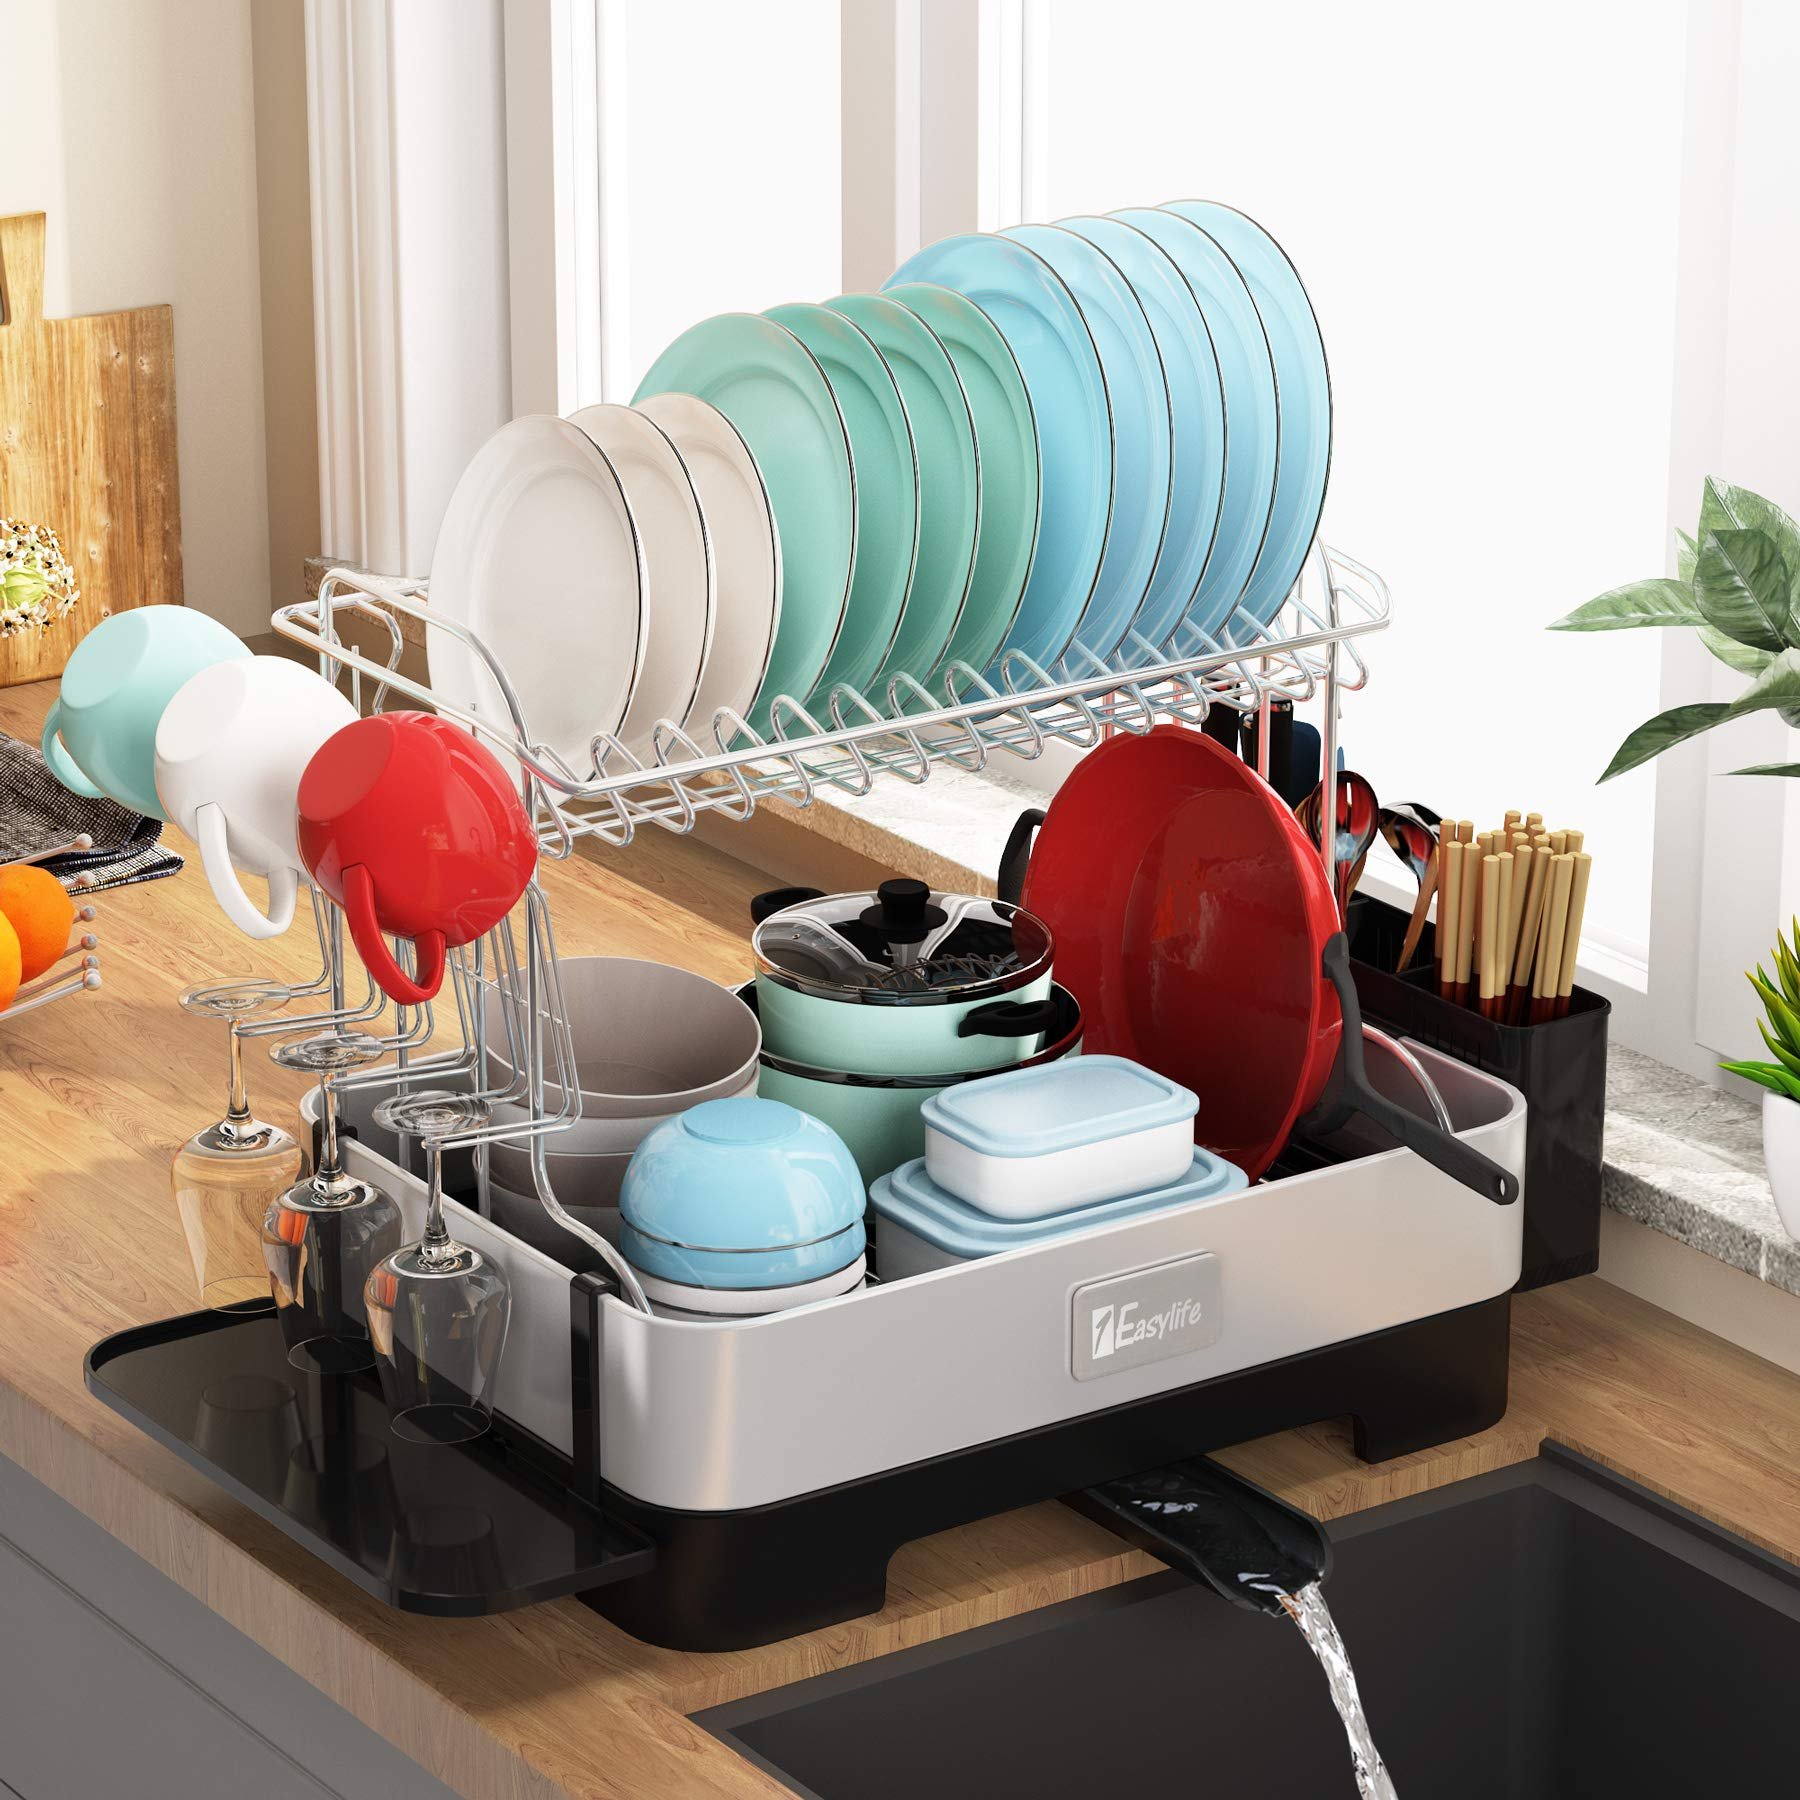 Adovel Dish Drying Rack And Drainboard Set 2 Tier Dish Drainer With Swivel Spout For Kitchen Counter 304 Stainless Steel Buy Online In Aruba At Aruba Desertcart Com Productid 213262739